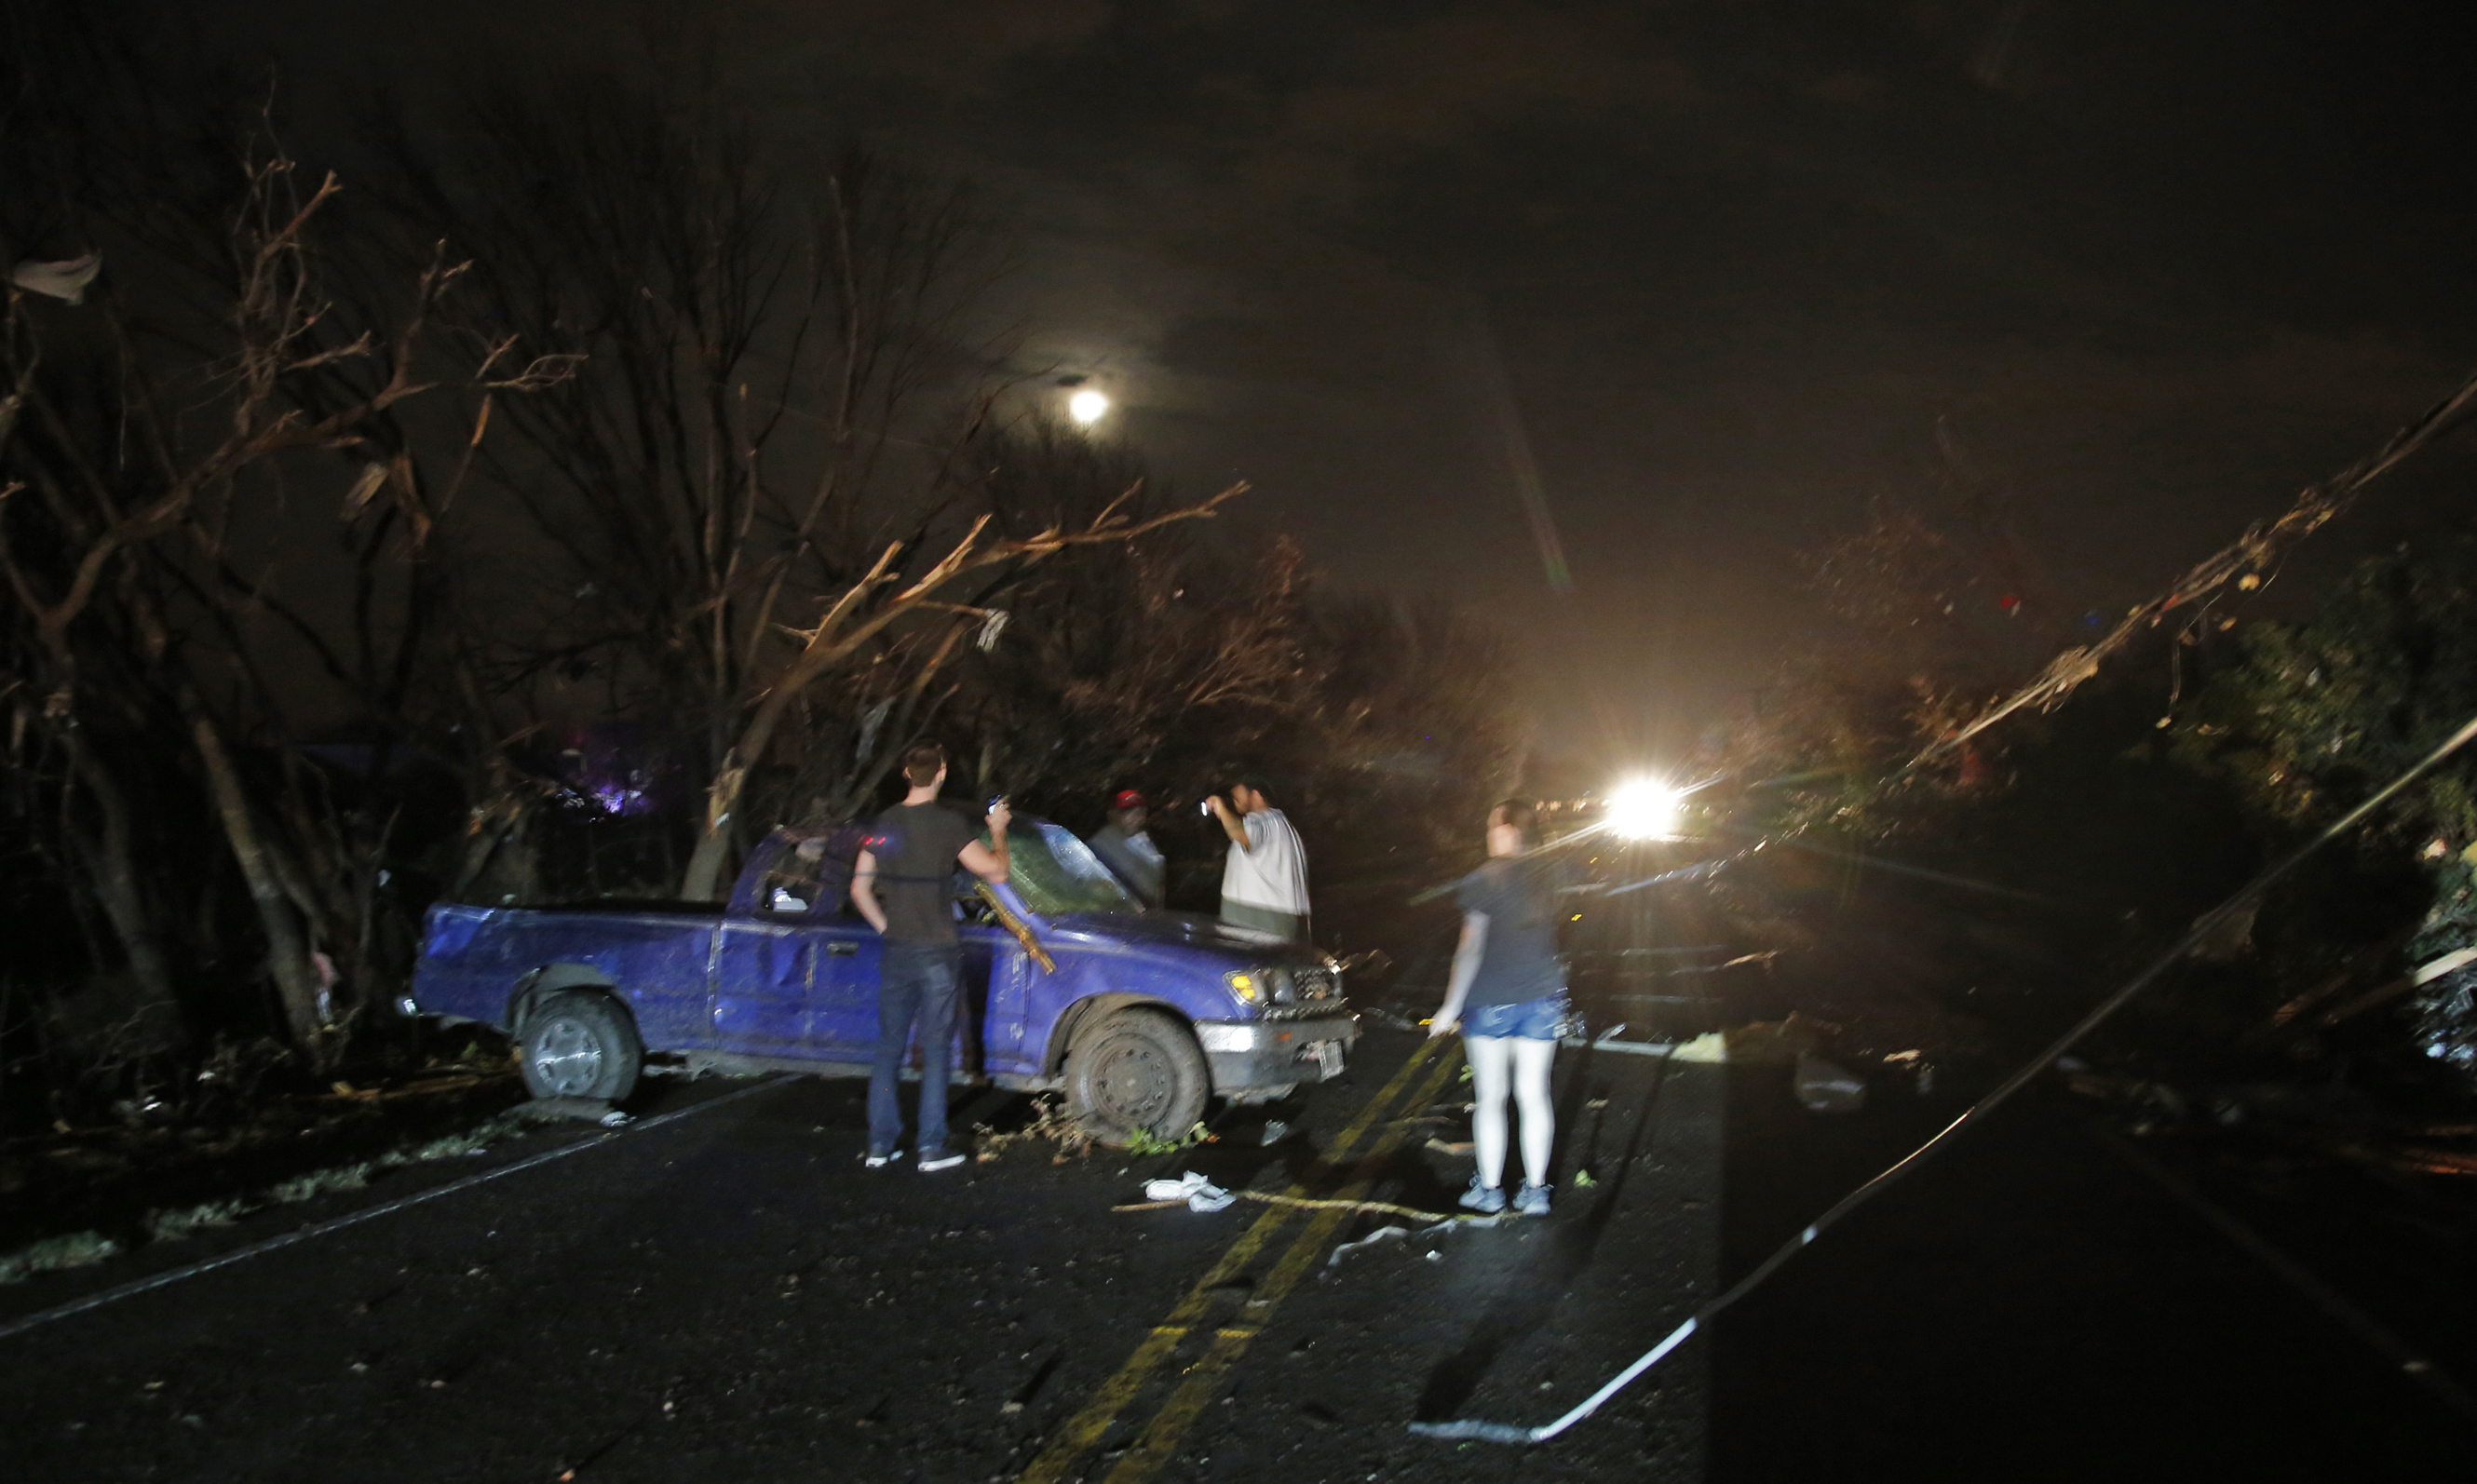 Downed trees and power lines litter the area as neighbors check a damaged pickup looking for the driver after reports of a tornado in Rowlett, Texas, Saturday, December 26, 2015. Photo: AP